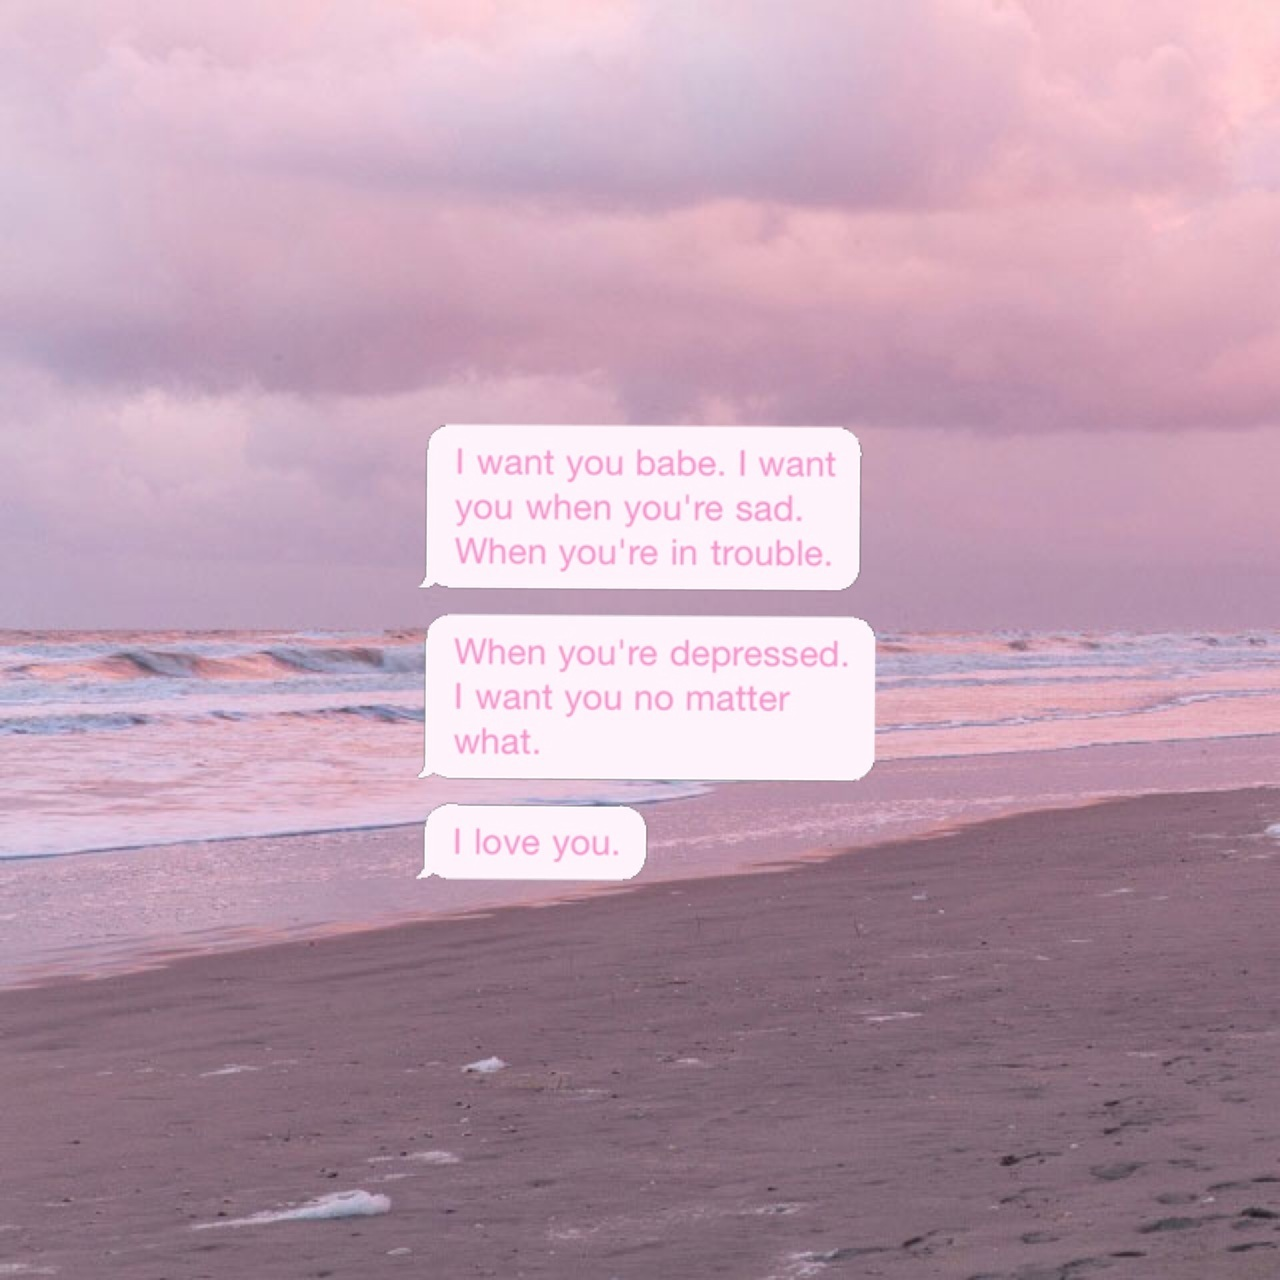 Aesthetic Awesome And Background Image Aesthetic Sad Love Background 1280x1280 Wallpaper Teahub Io